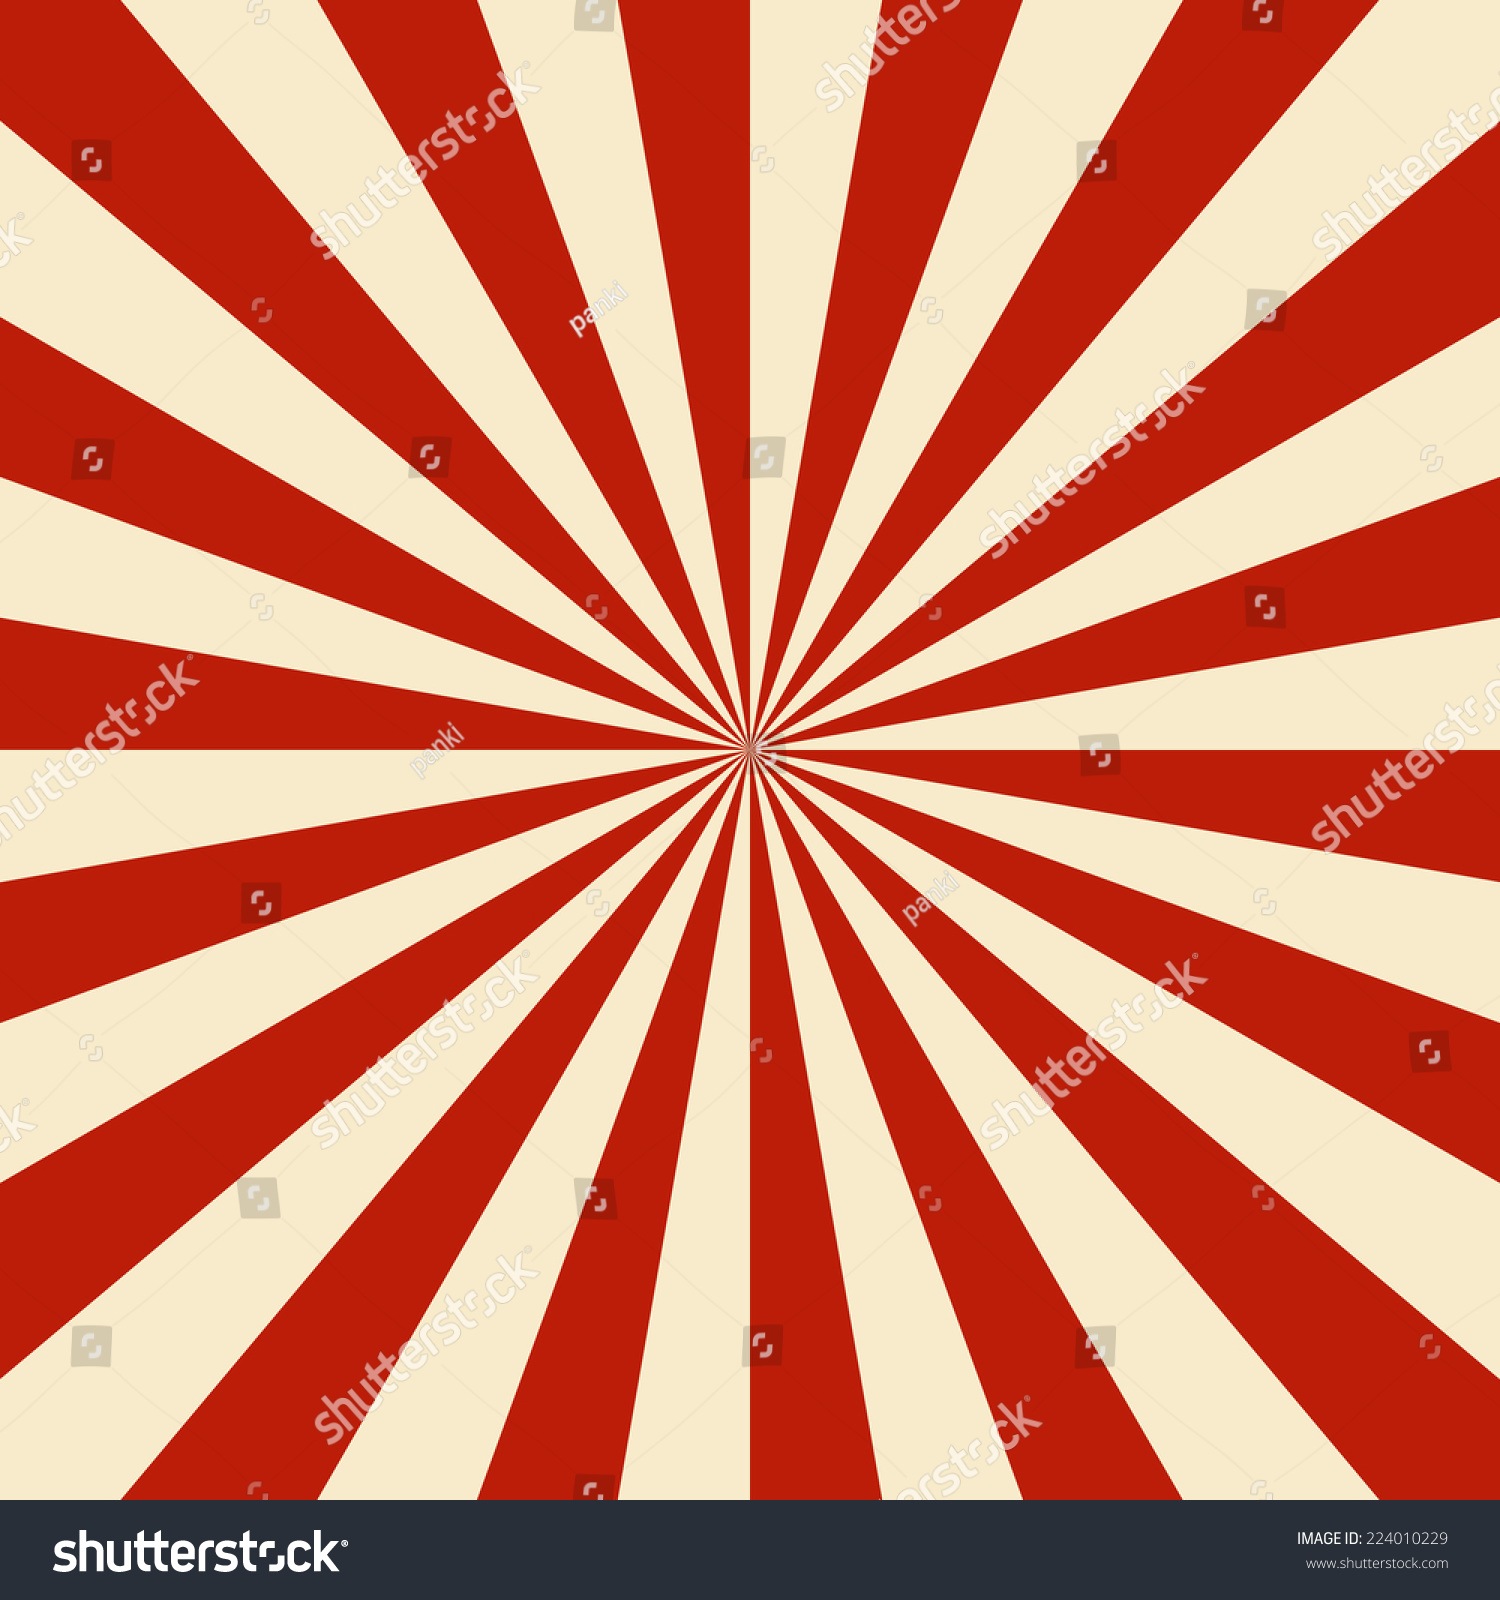 Sun Burst Background Red Vintage Stock Vector 224010229 ... Vintage Burst Background